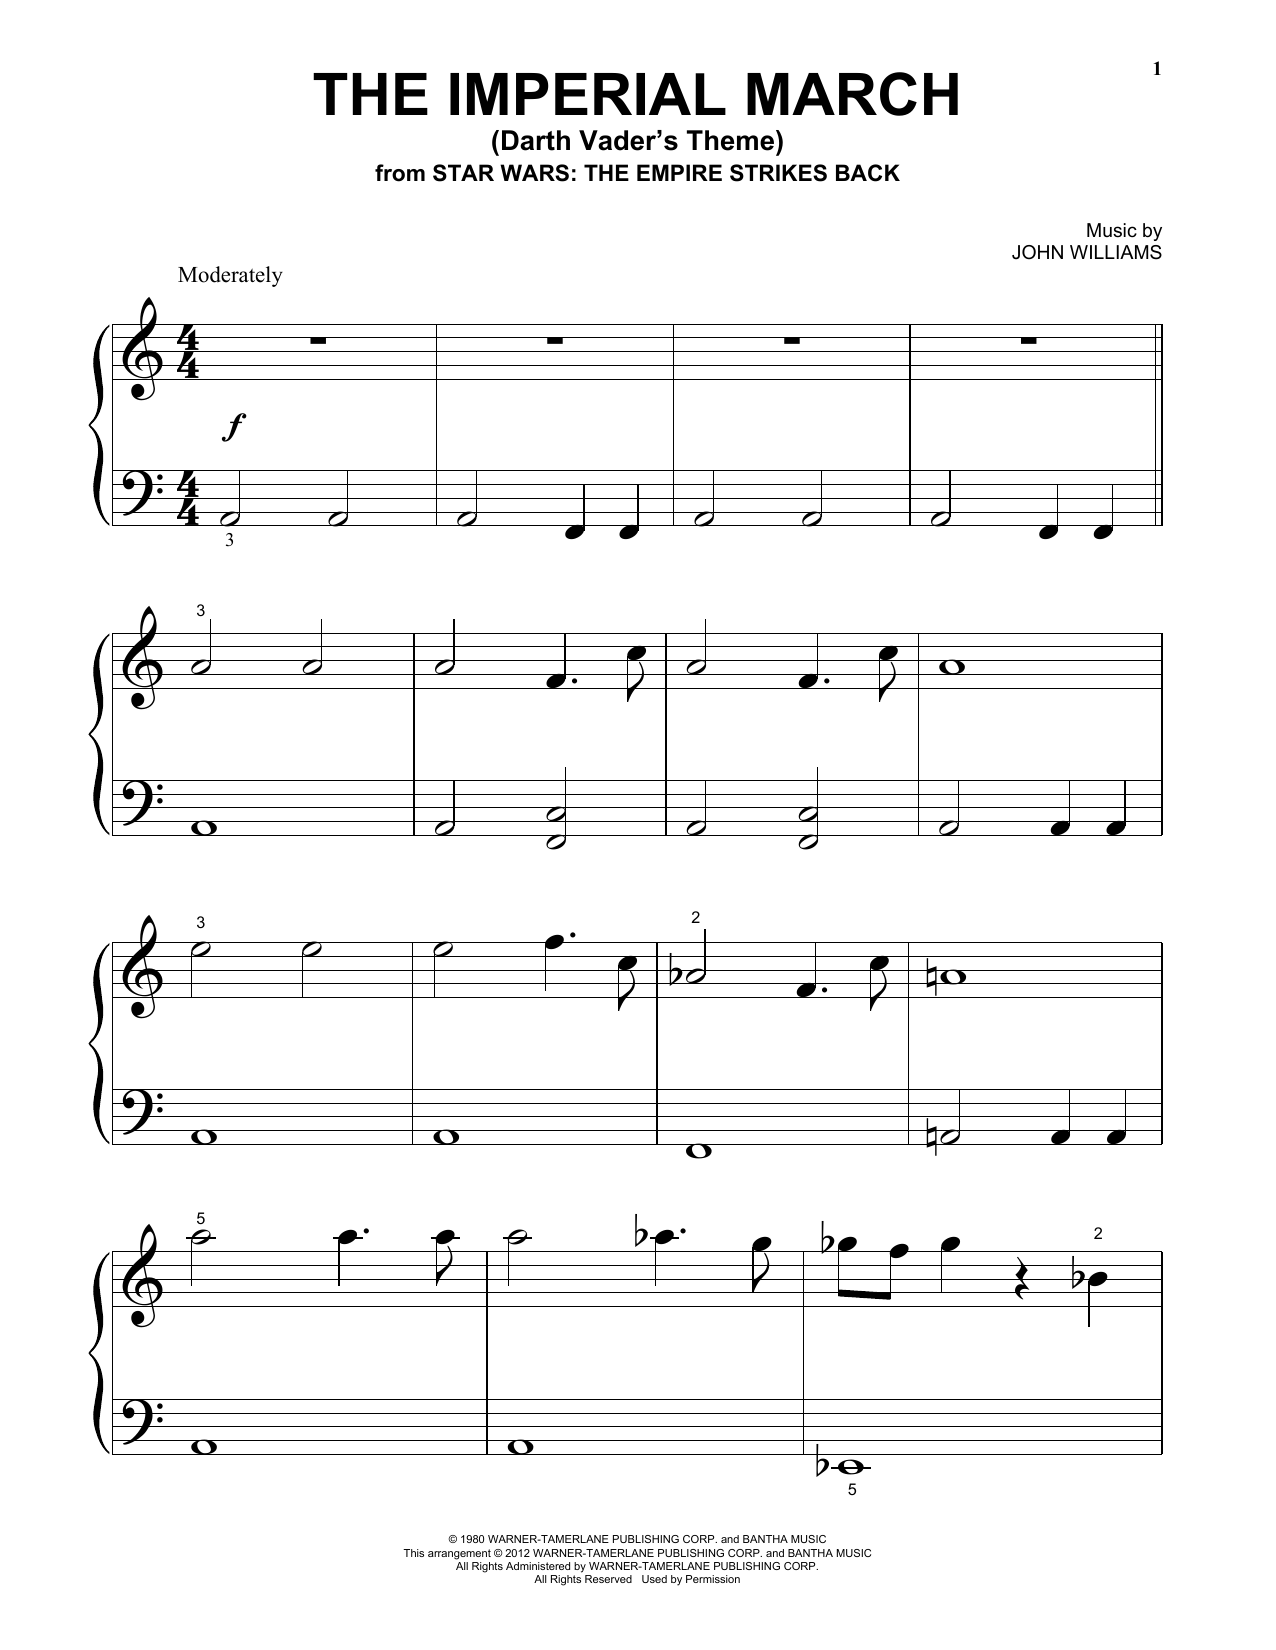 The Imperial March (Darth Vaderu0026#39;s Theme) : Sheet Music Direct